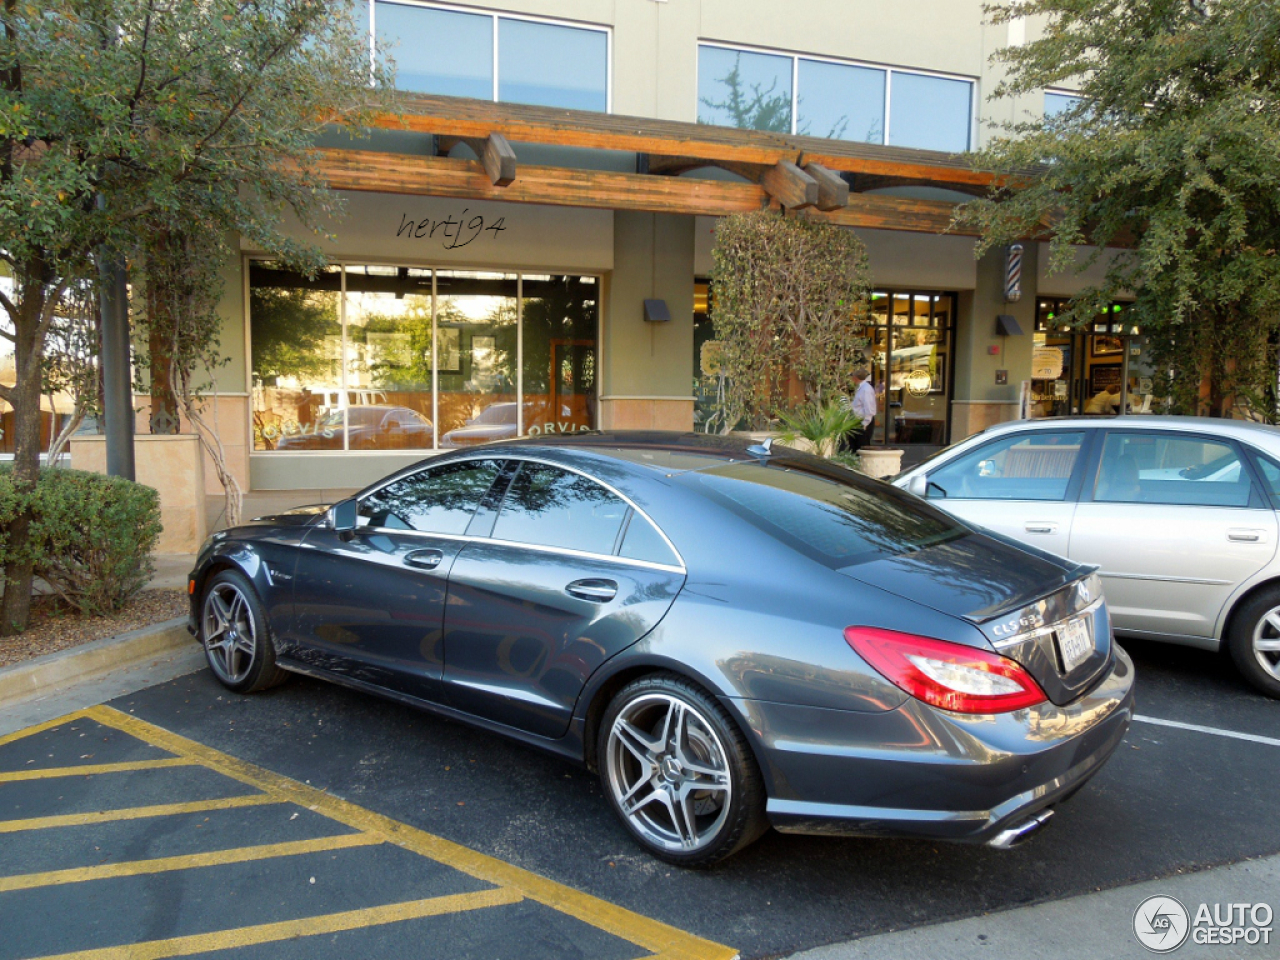 Mercedes benz cls 63 amg c218 20 january 2013 autogespot for Mercedes benz cls 63 amg price